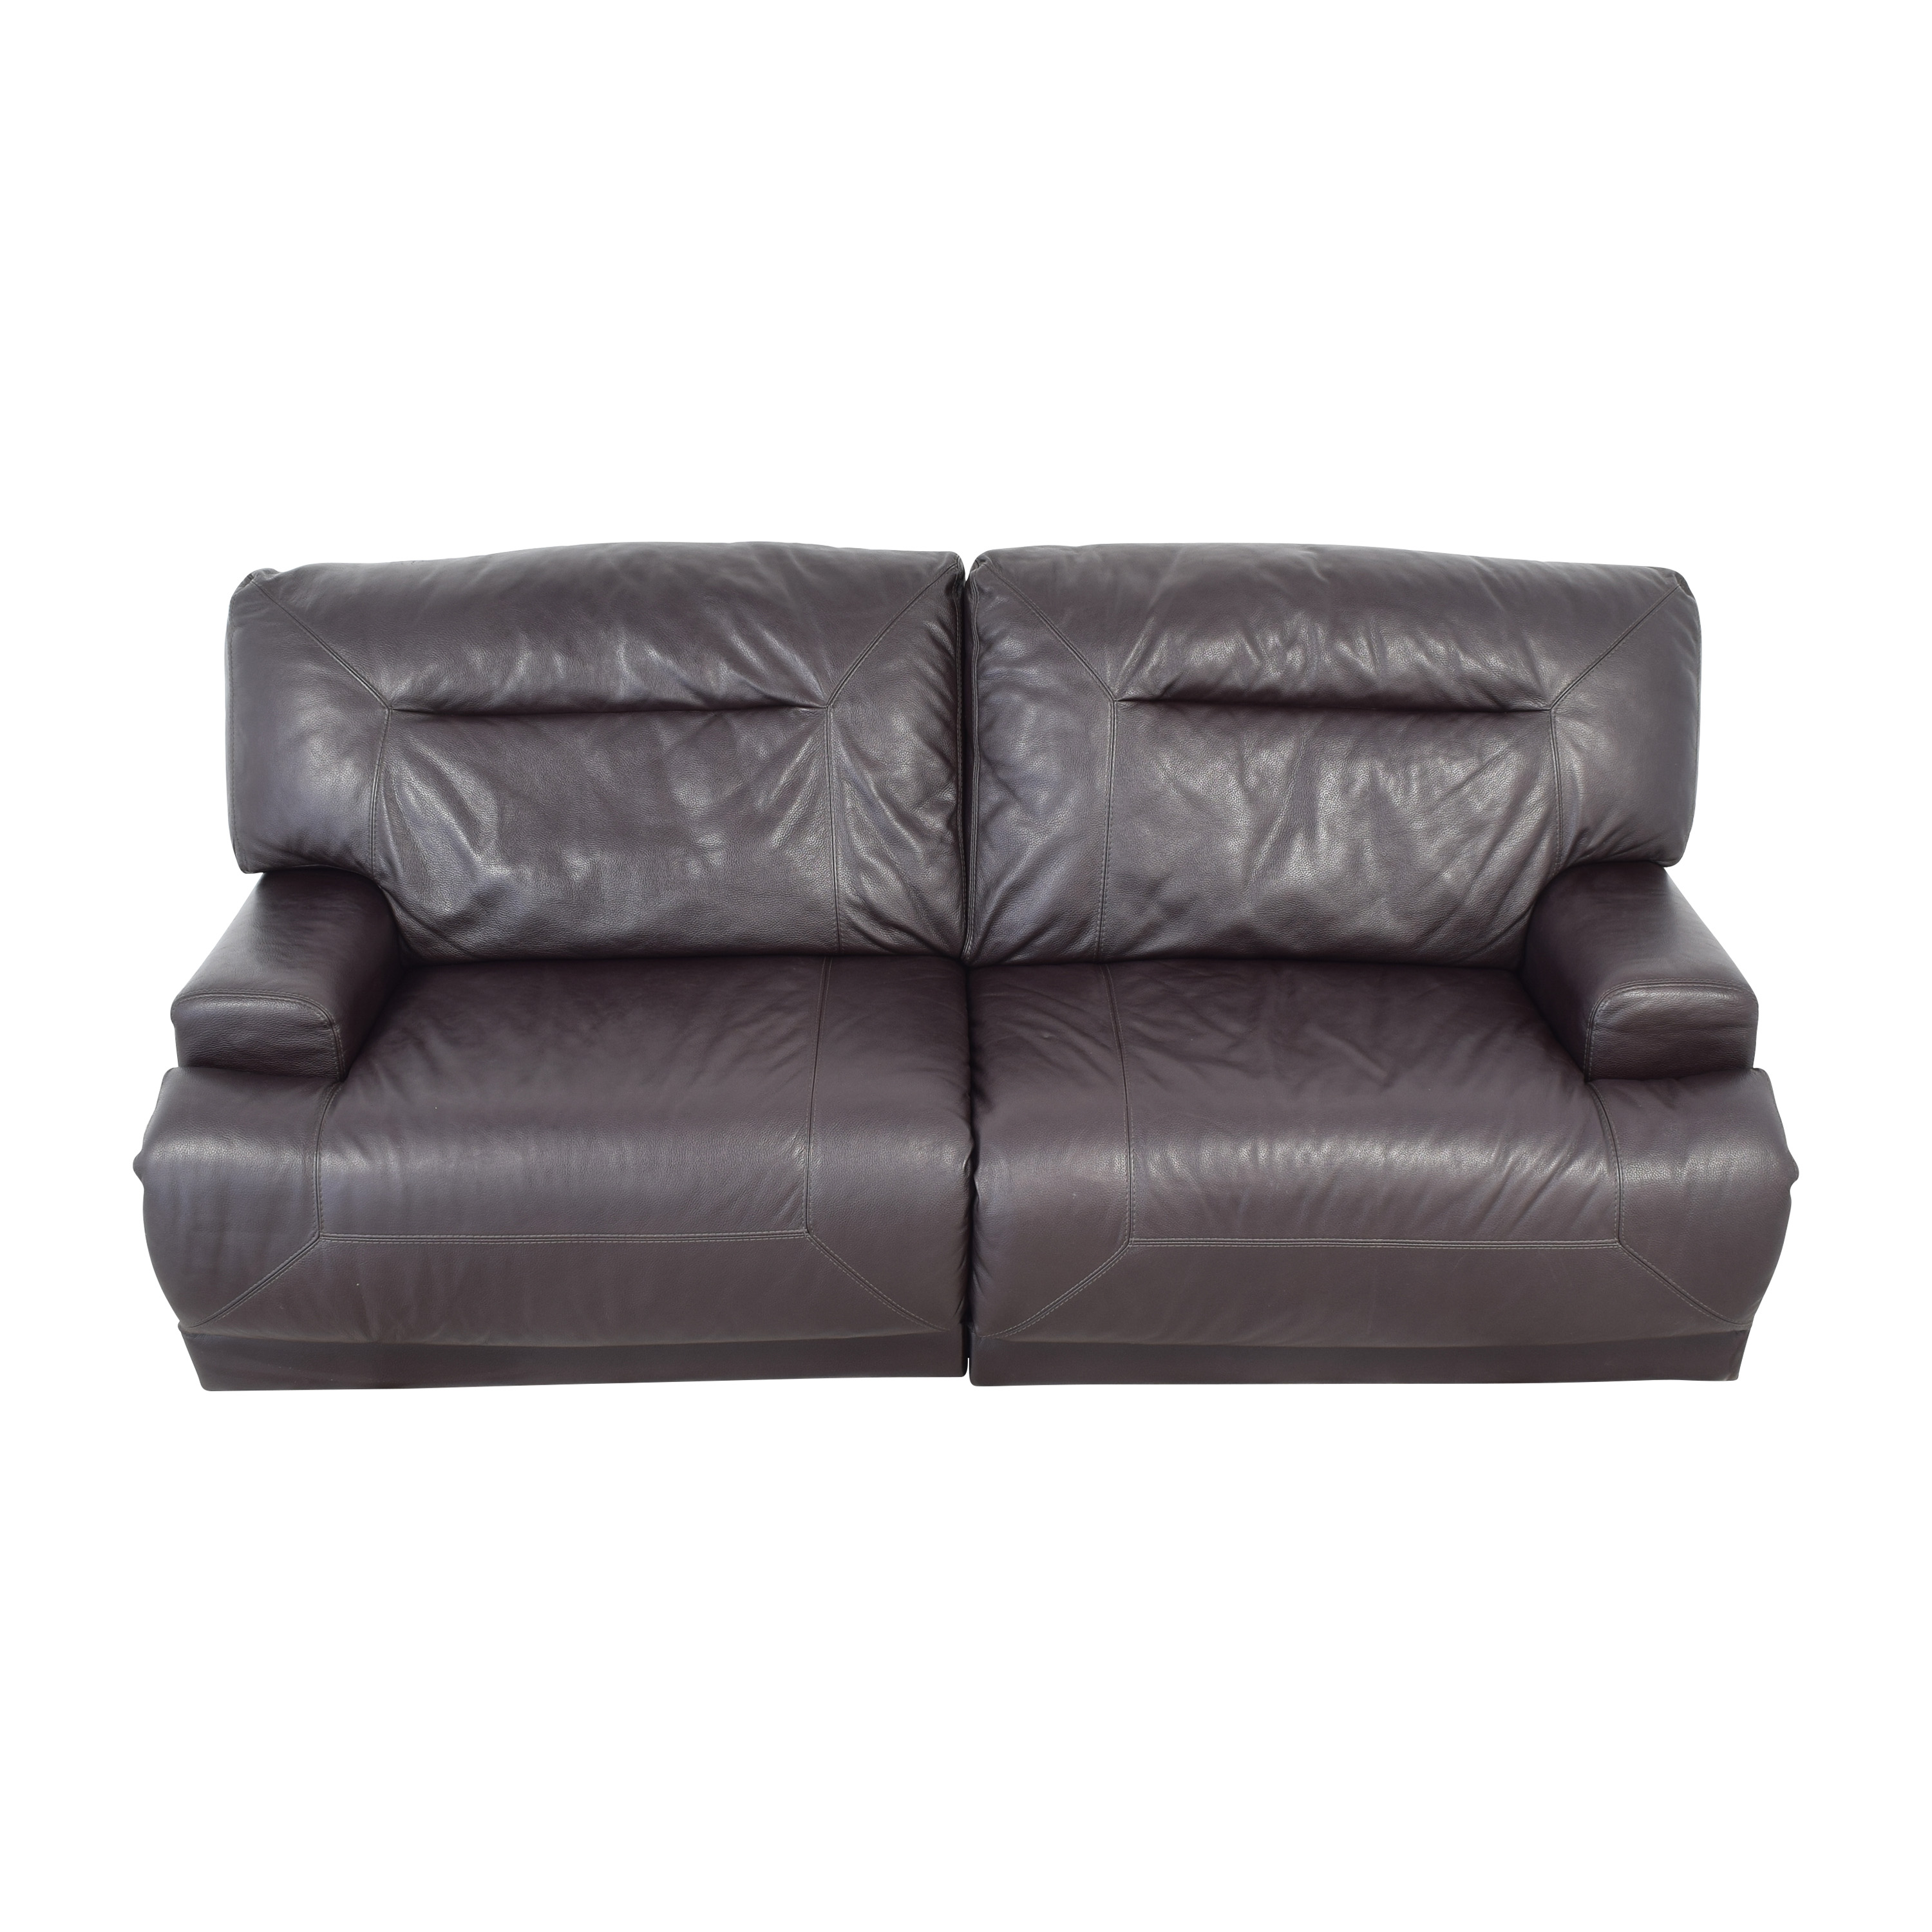 Macy's Macy's Reclining Sofa for sale